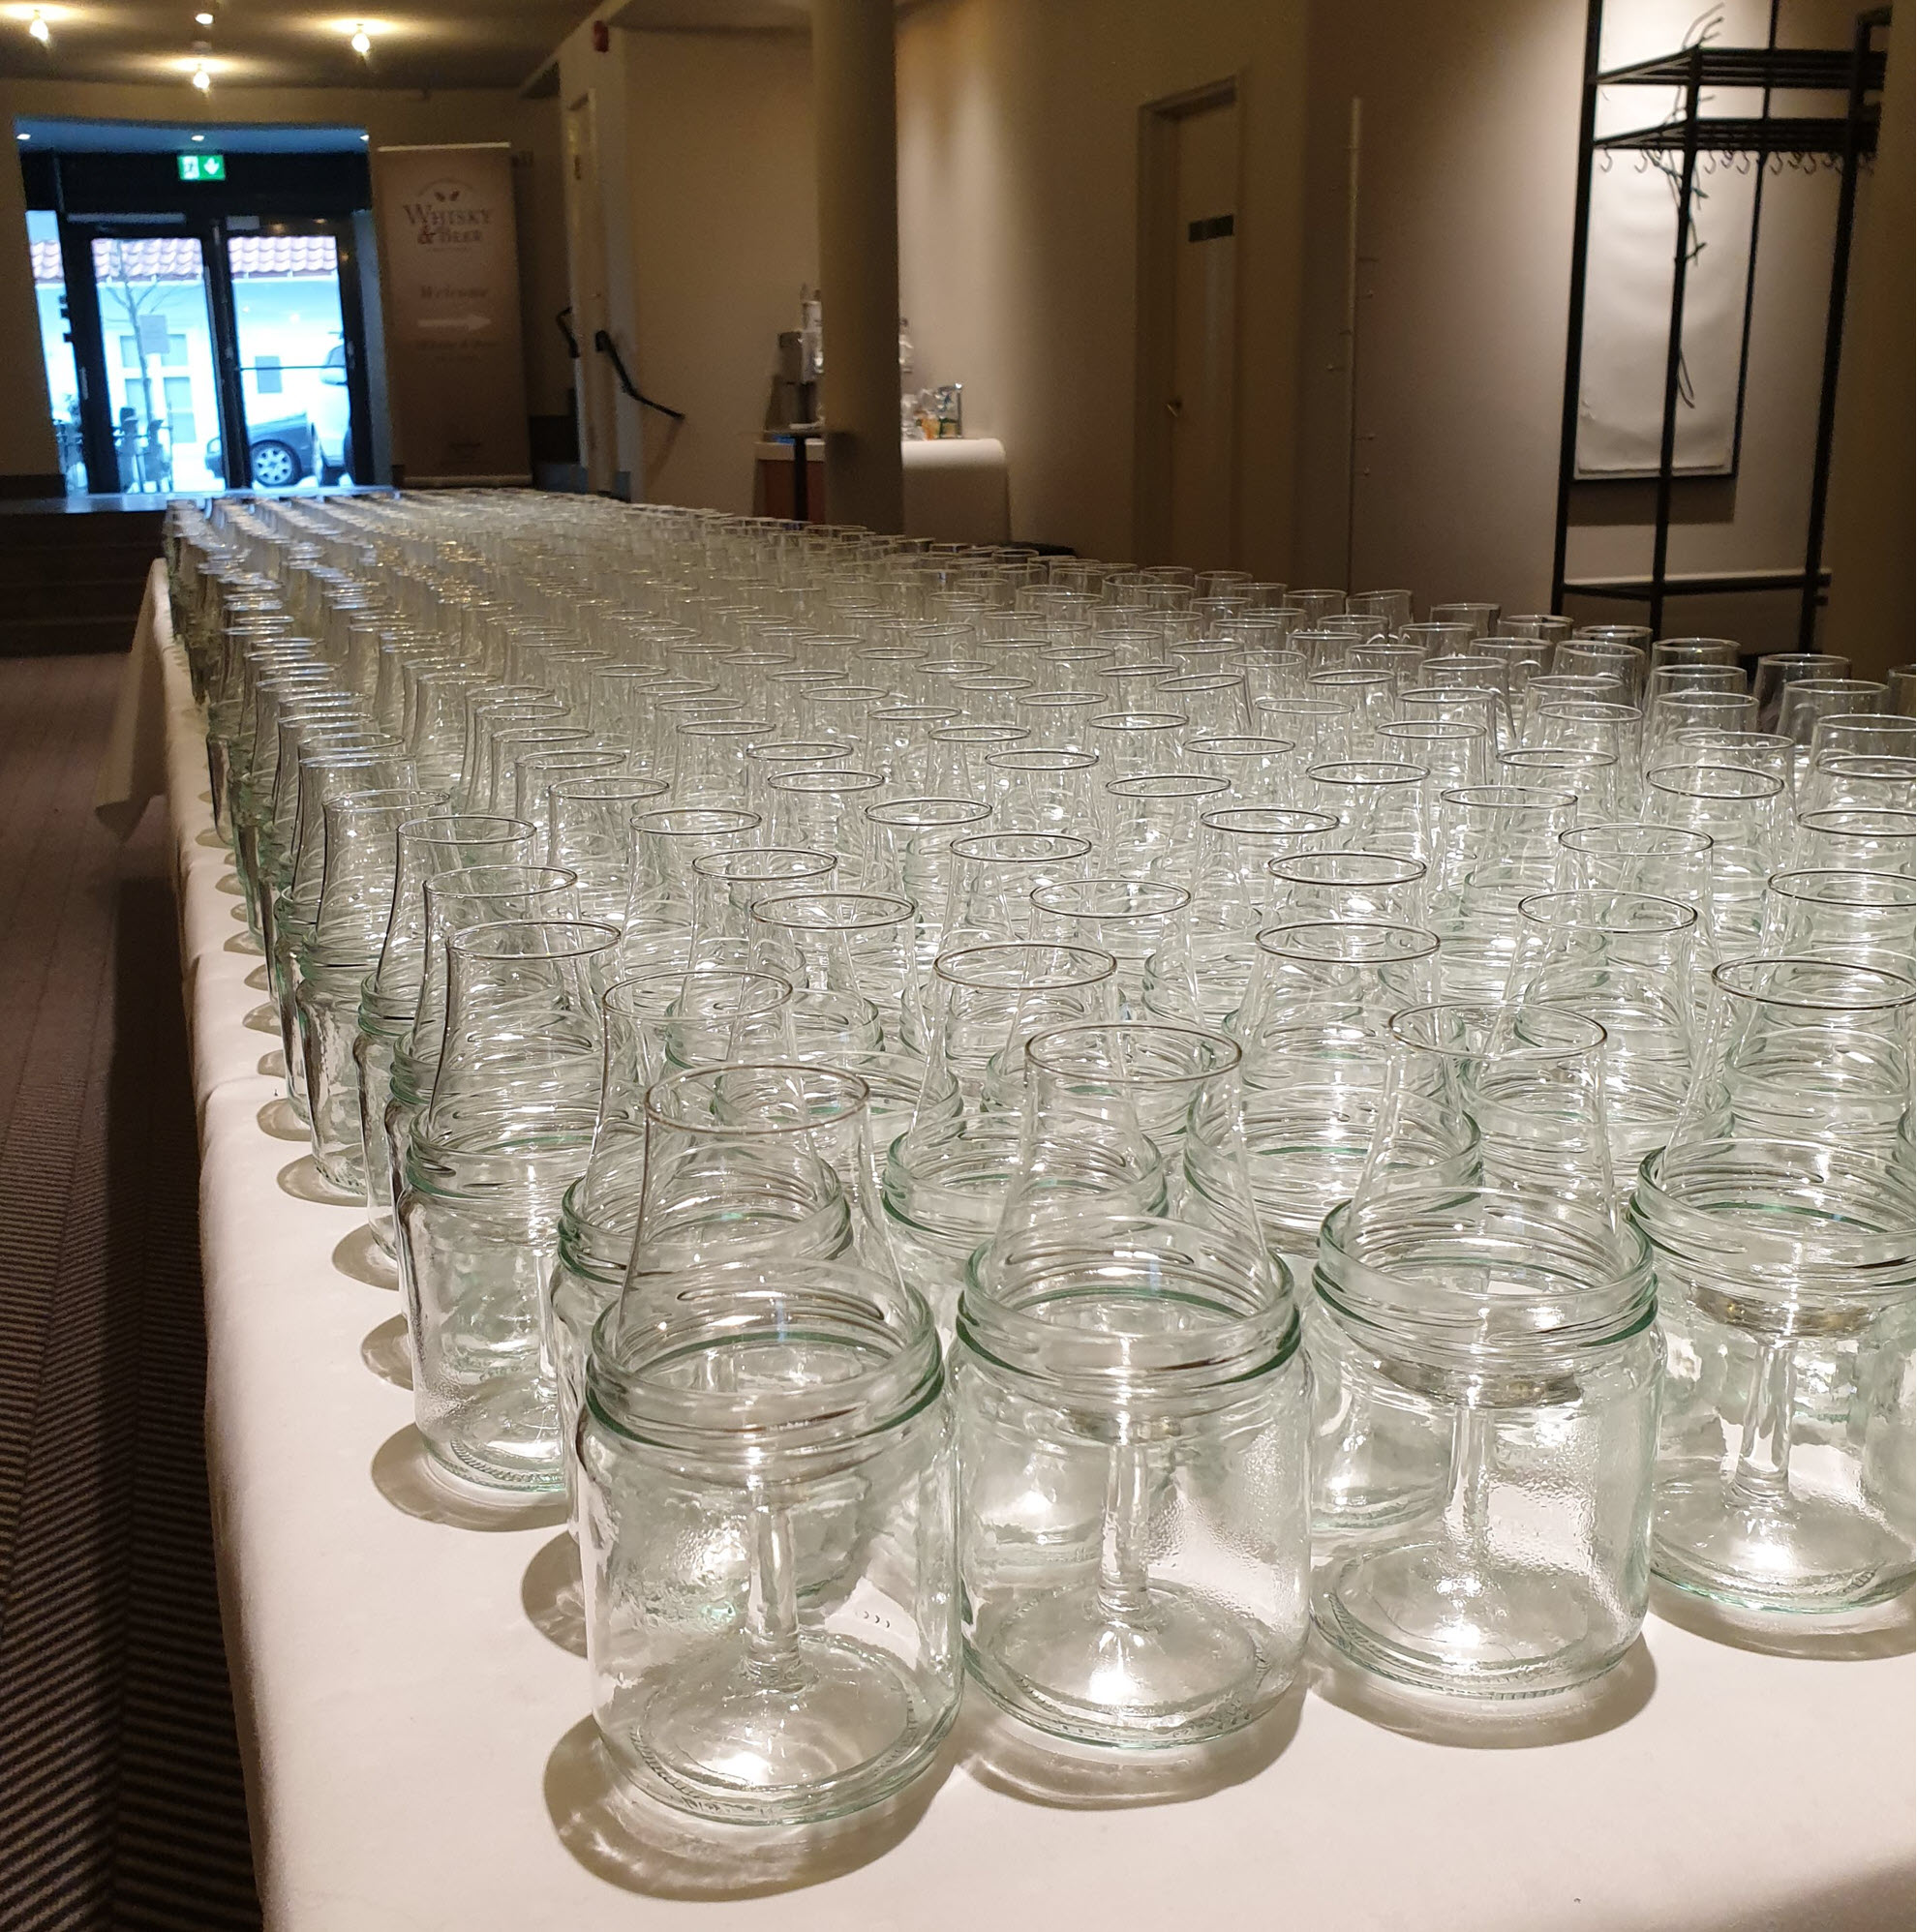 A few glasses lined up. Ticket sales are on par with last year, which means the festival is mostly sold out. All attendees will get a whisky glass and a beer glass when entering.